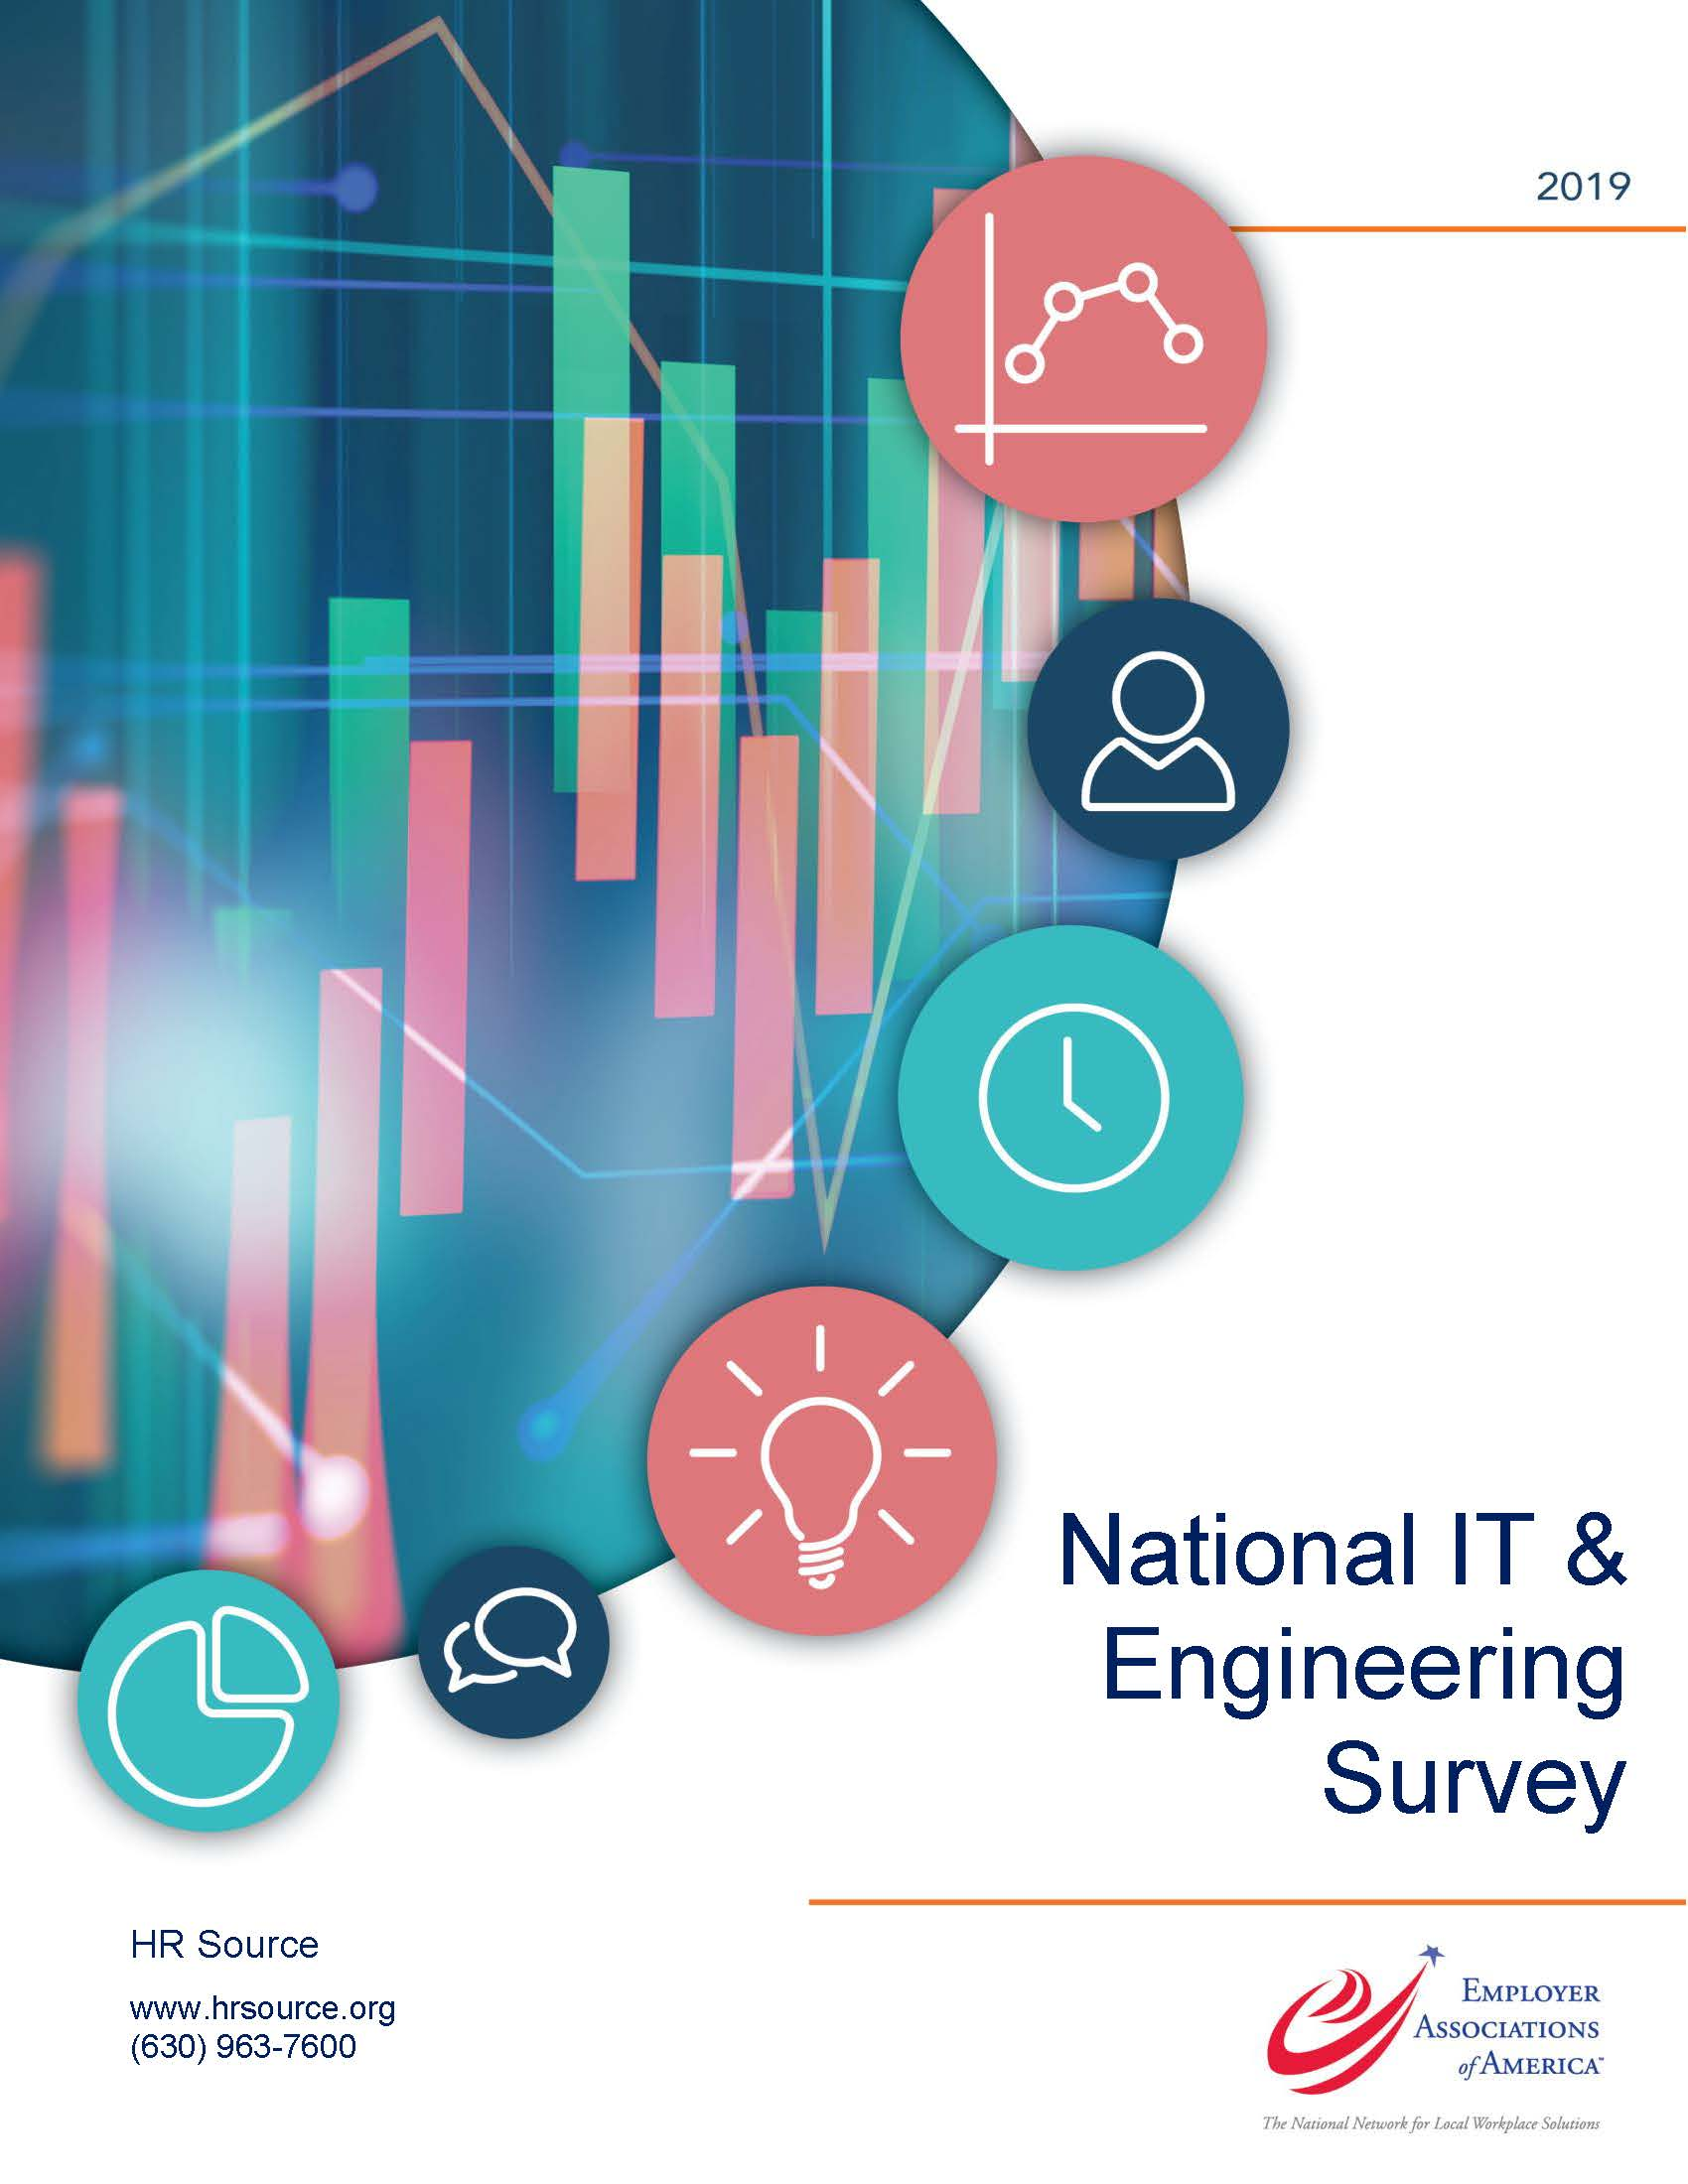 National IT & Engineering Survey 2019